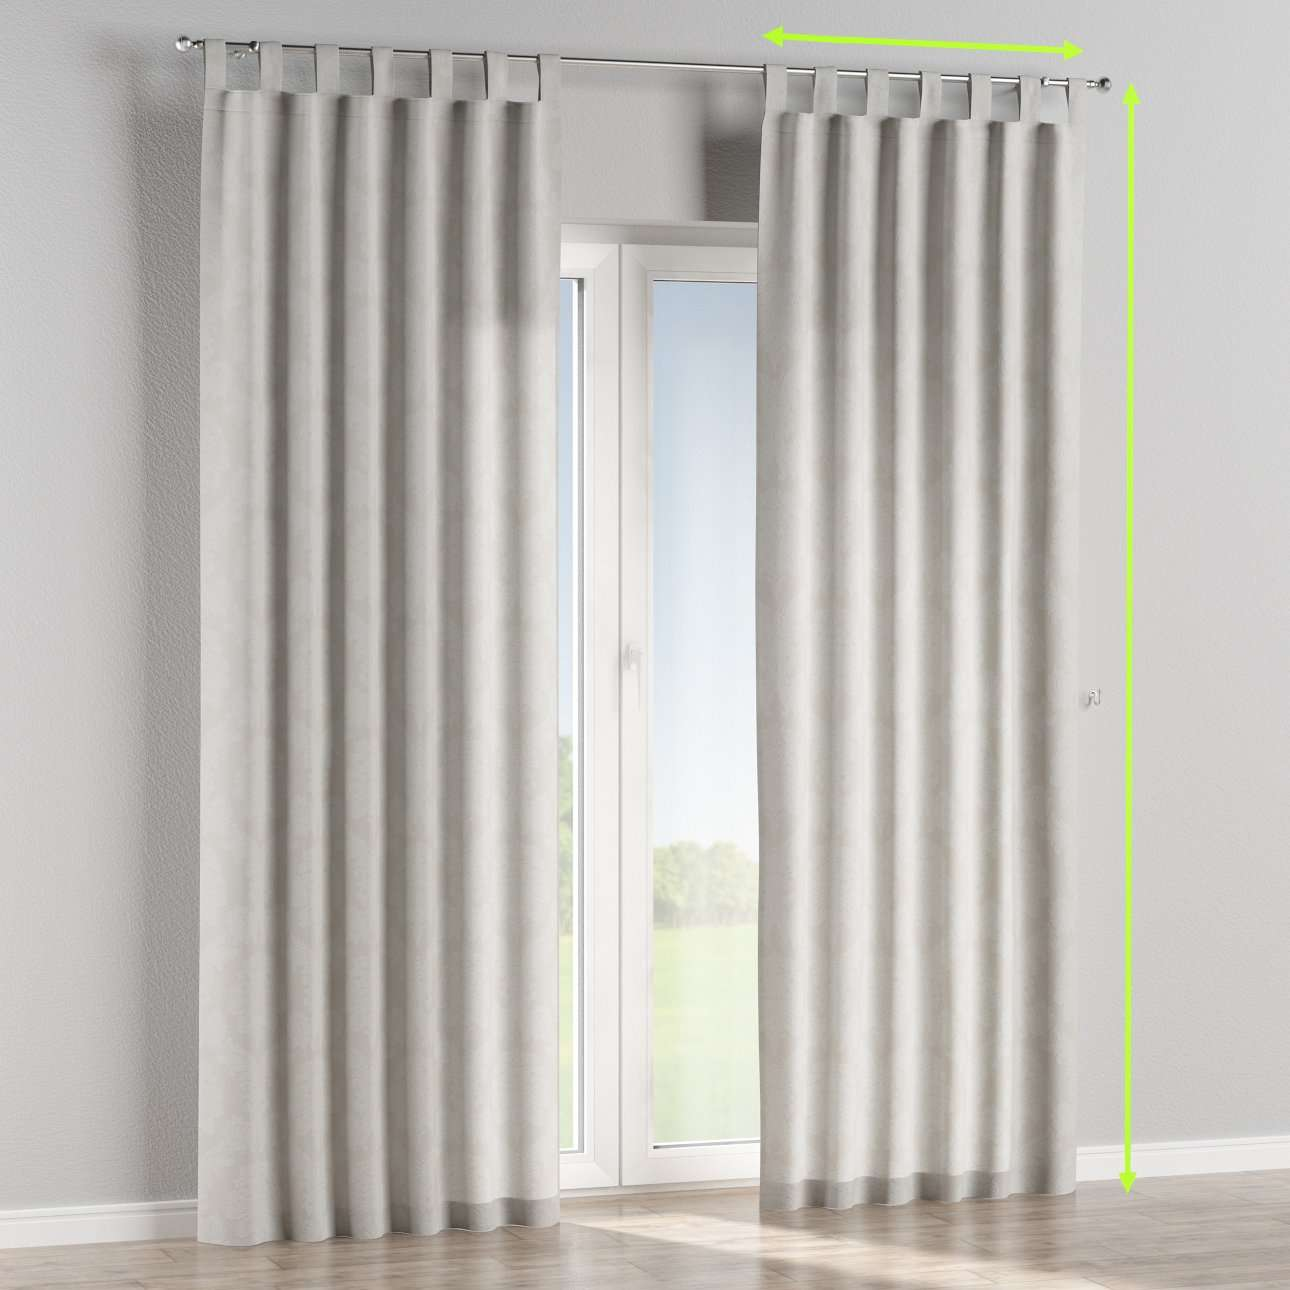 Tab top curtains in collection Damasco, fabric: 613-81